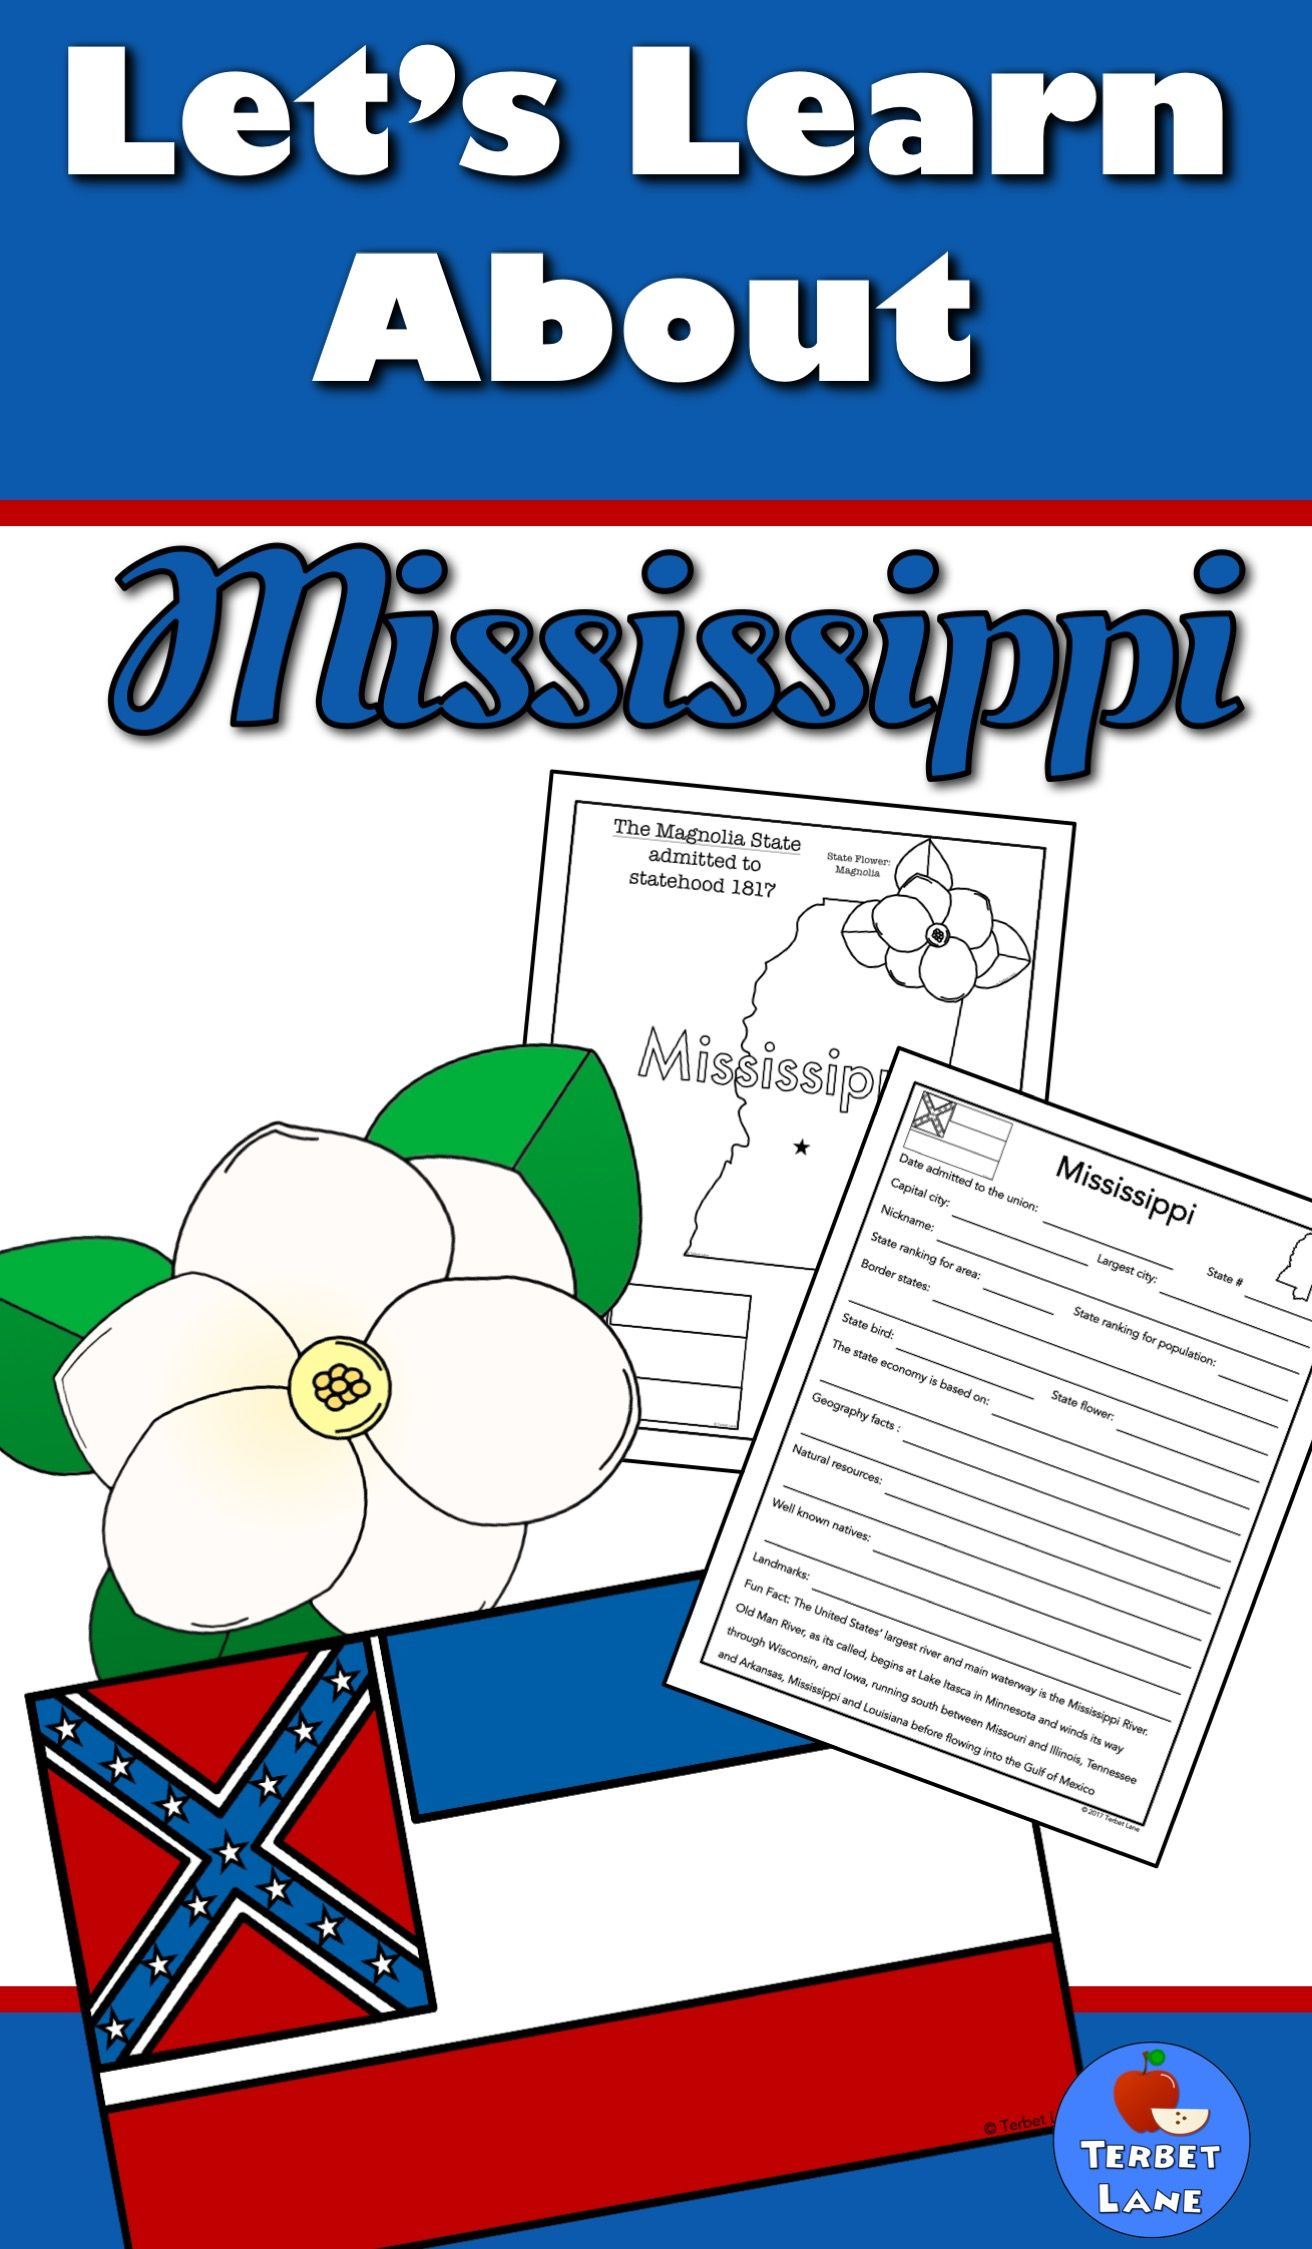 Mississippi history and symbols unit study pinterest geography mississippi state symbols history geography economics and more includes coloring sheets a fact sheet and 18 research task cards for further study publicscrutiny Images